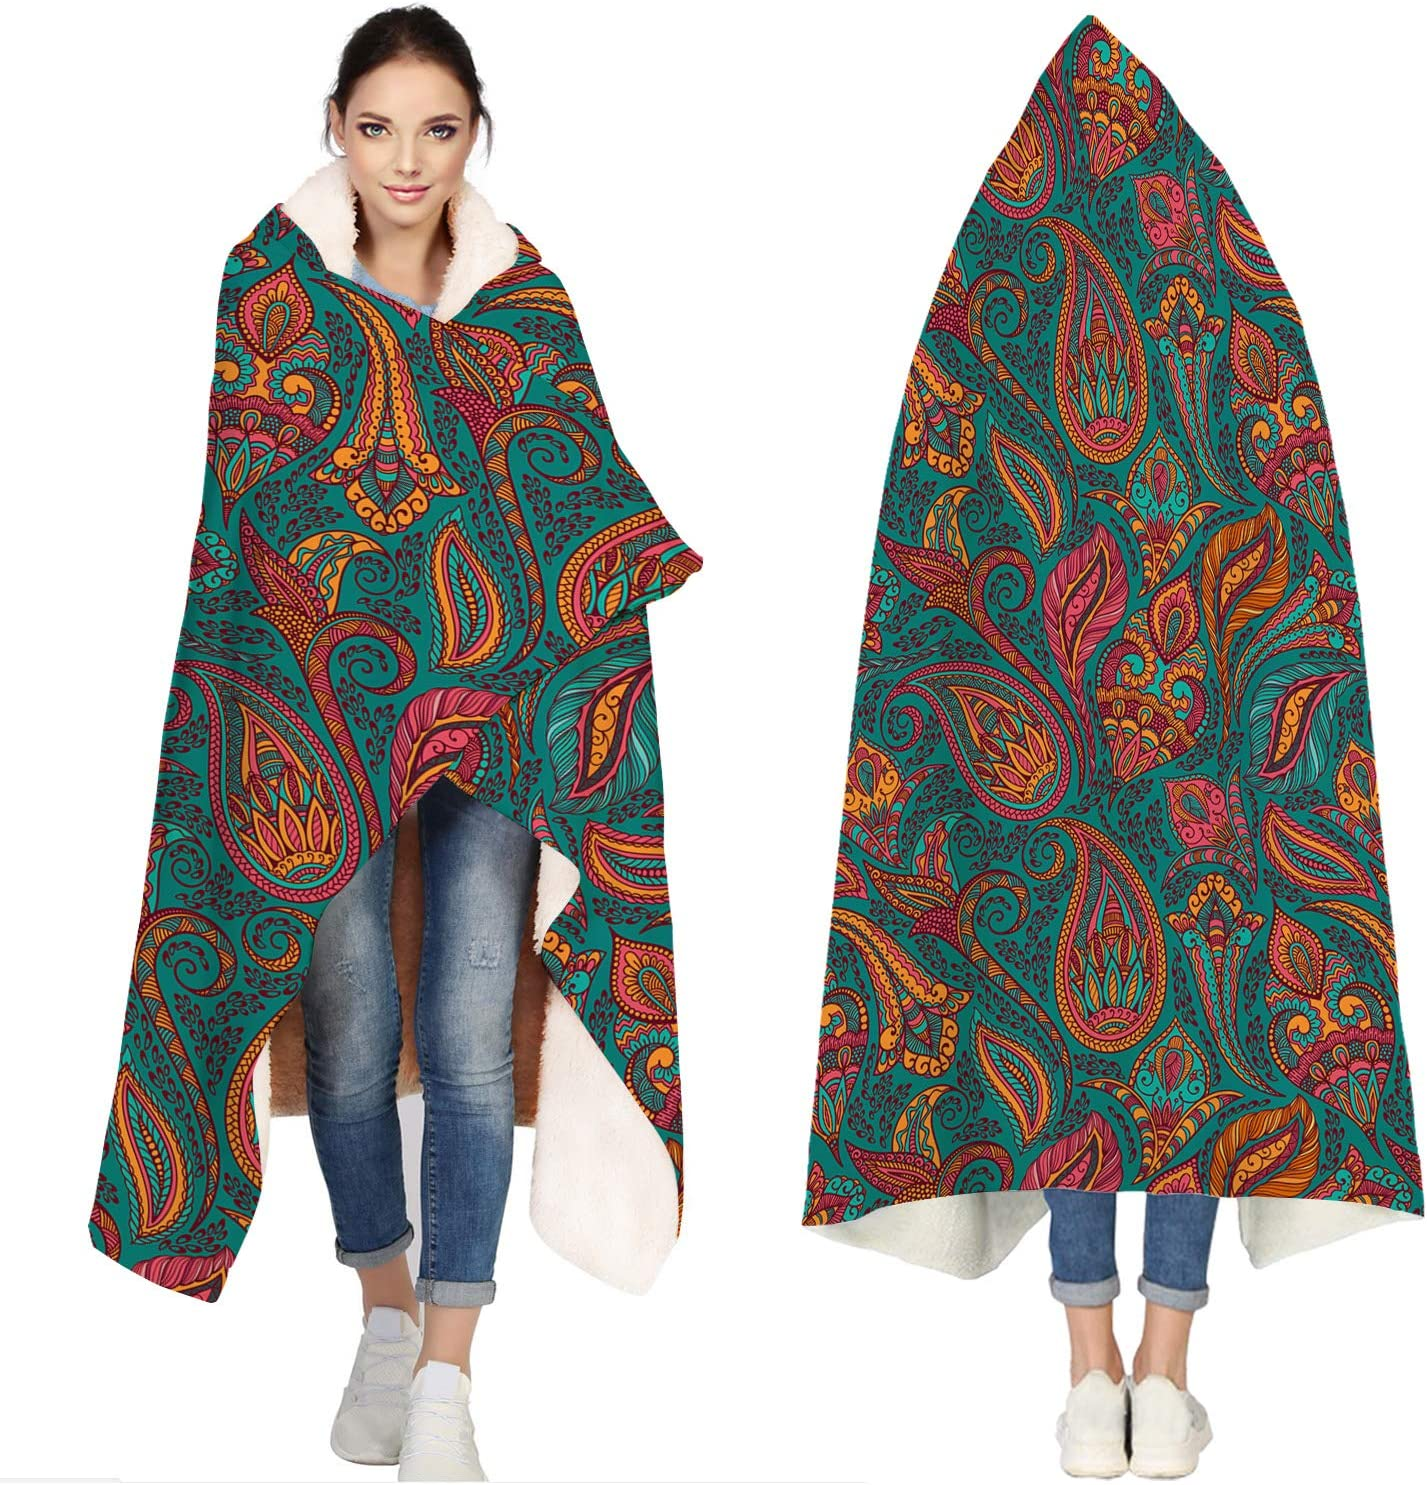 Seven Roses Hooded Blankets for Indian Adults Patte Traditional Price reduction 67% OFF of fixed price